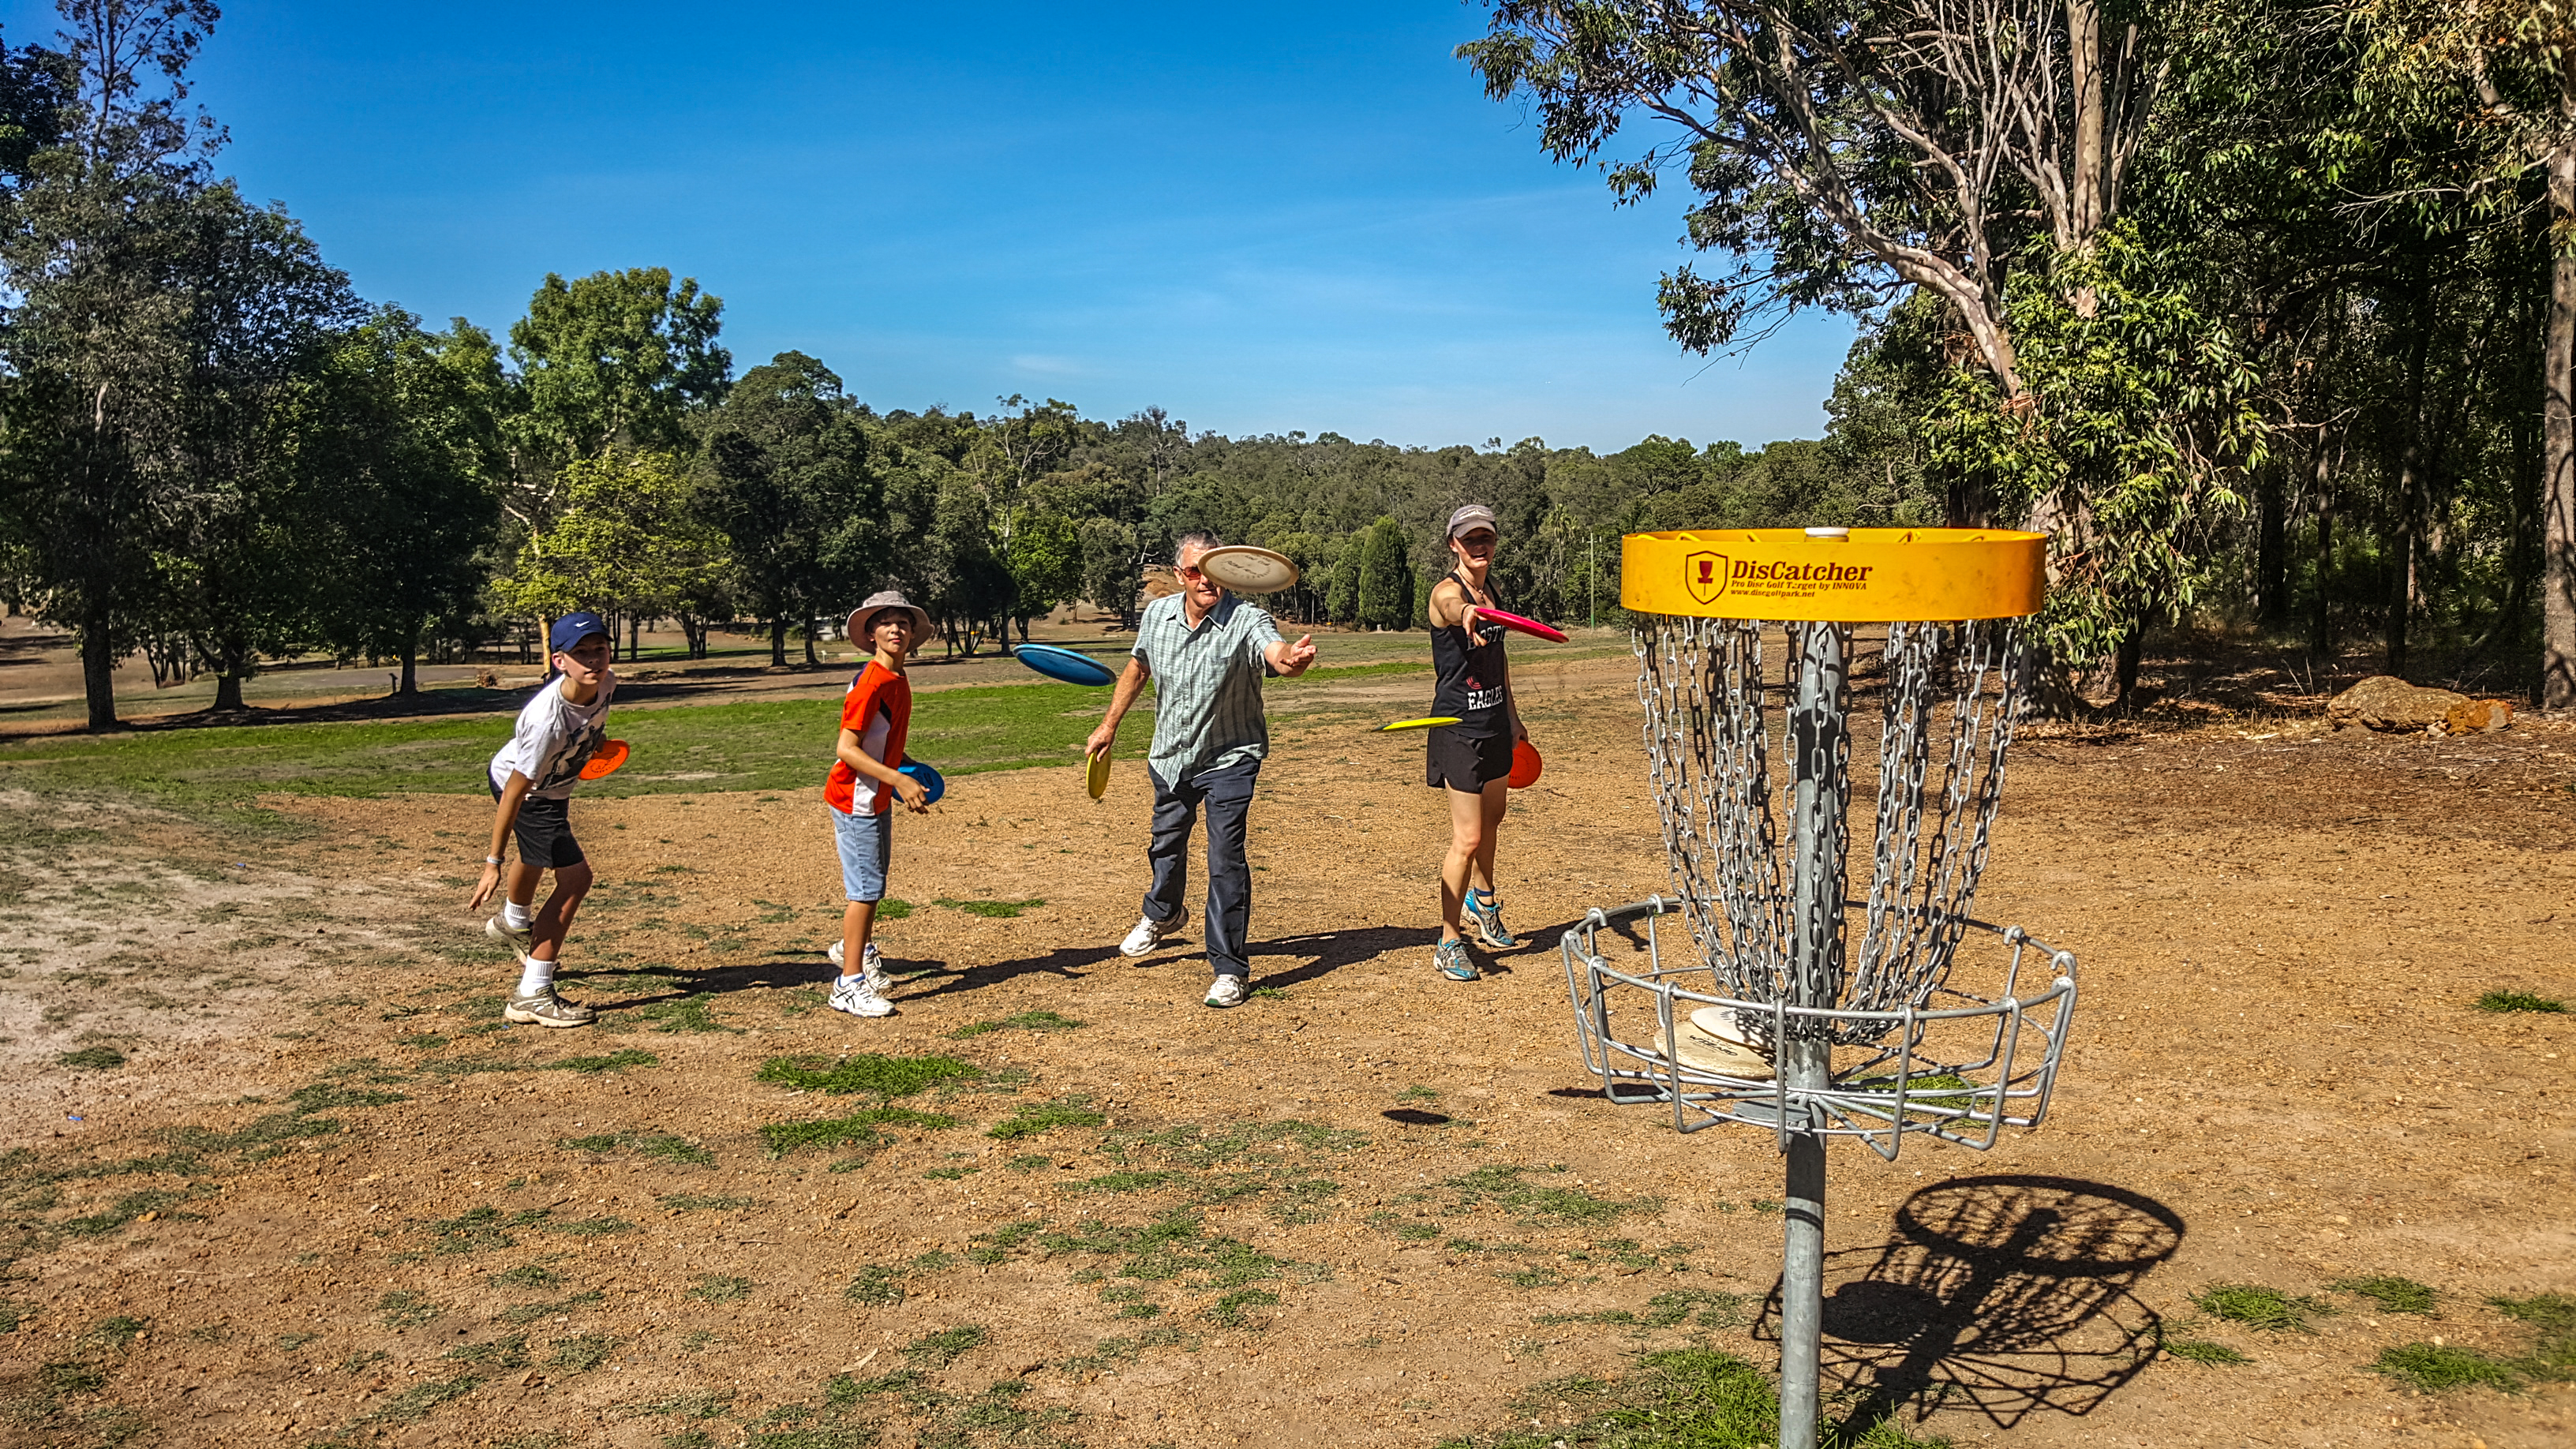 an image of people trying to shoot frisbee in a disc golf basket